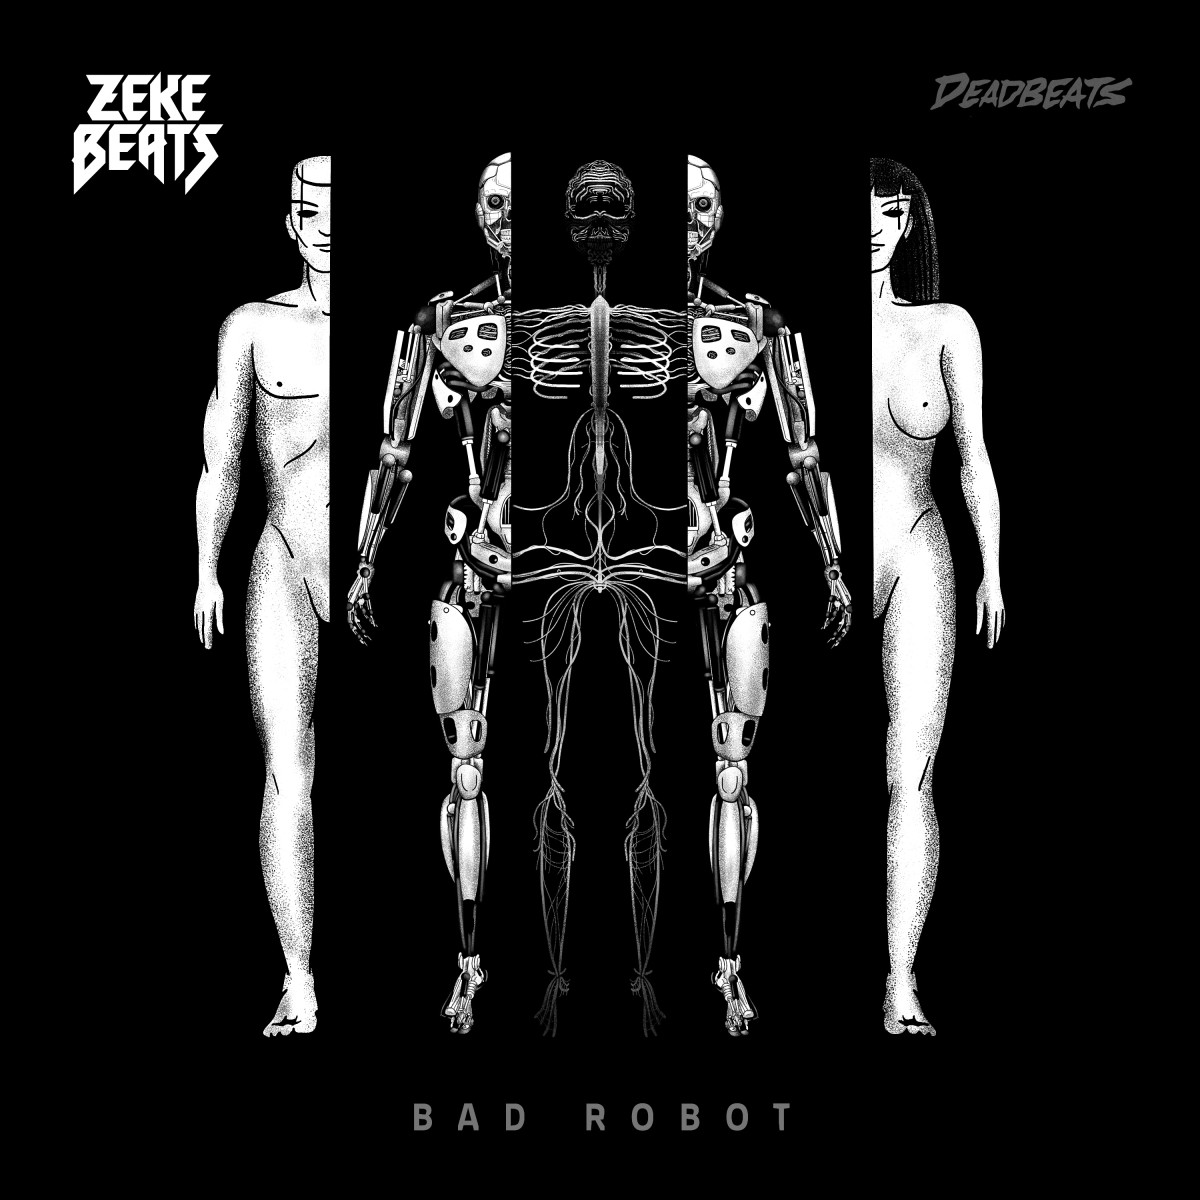 ZEKE BEATS - Bad Robots EP on Deadbeats, EDM.com Feature, Zeds Dead Record Label